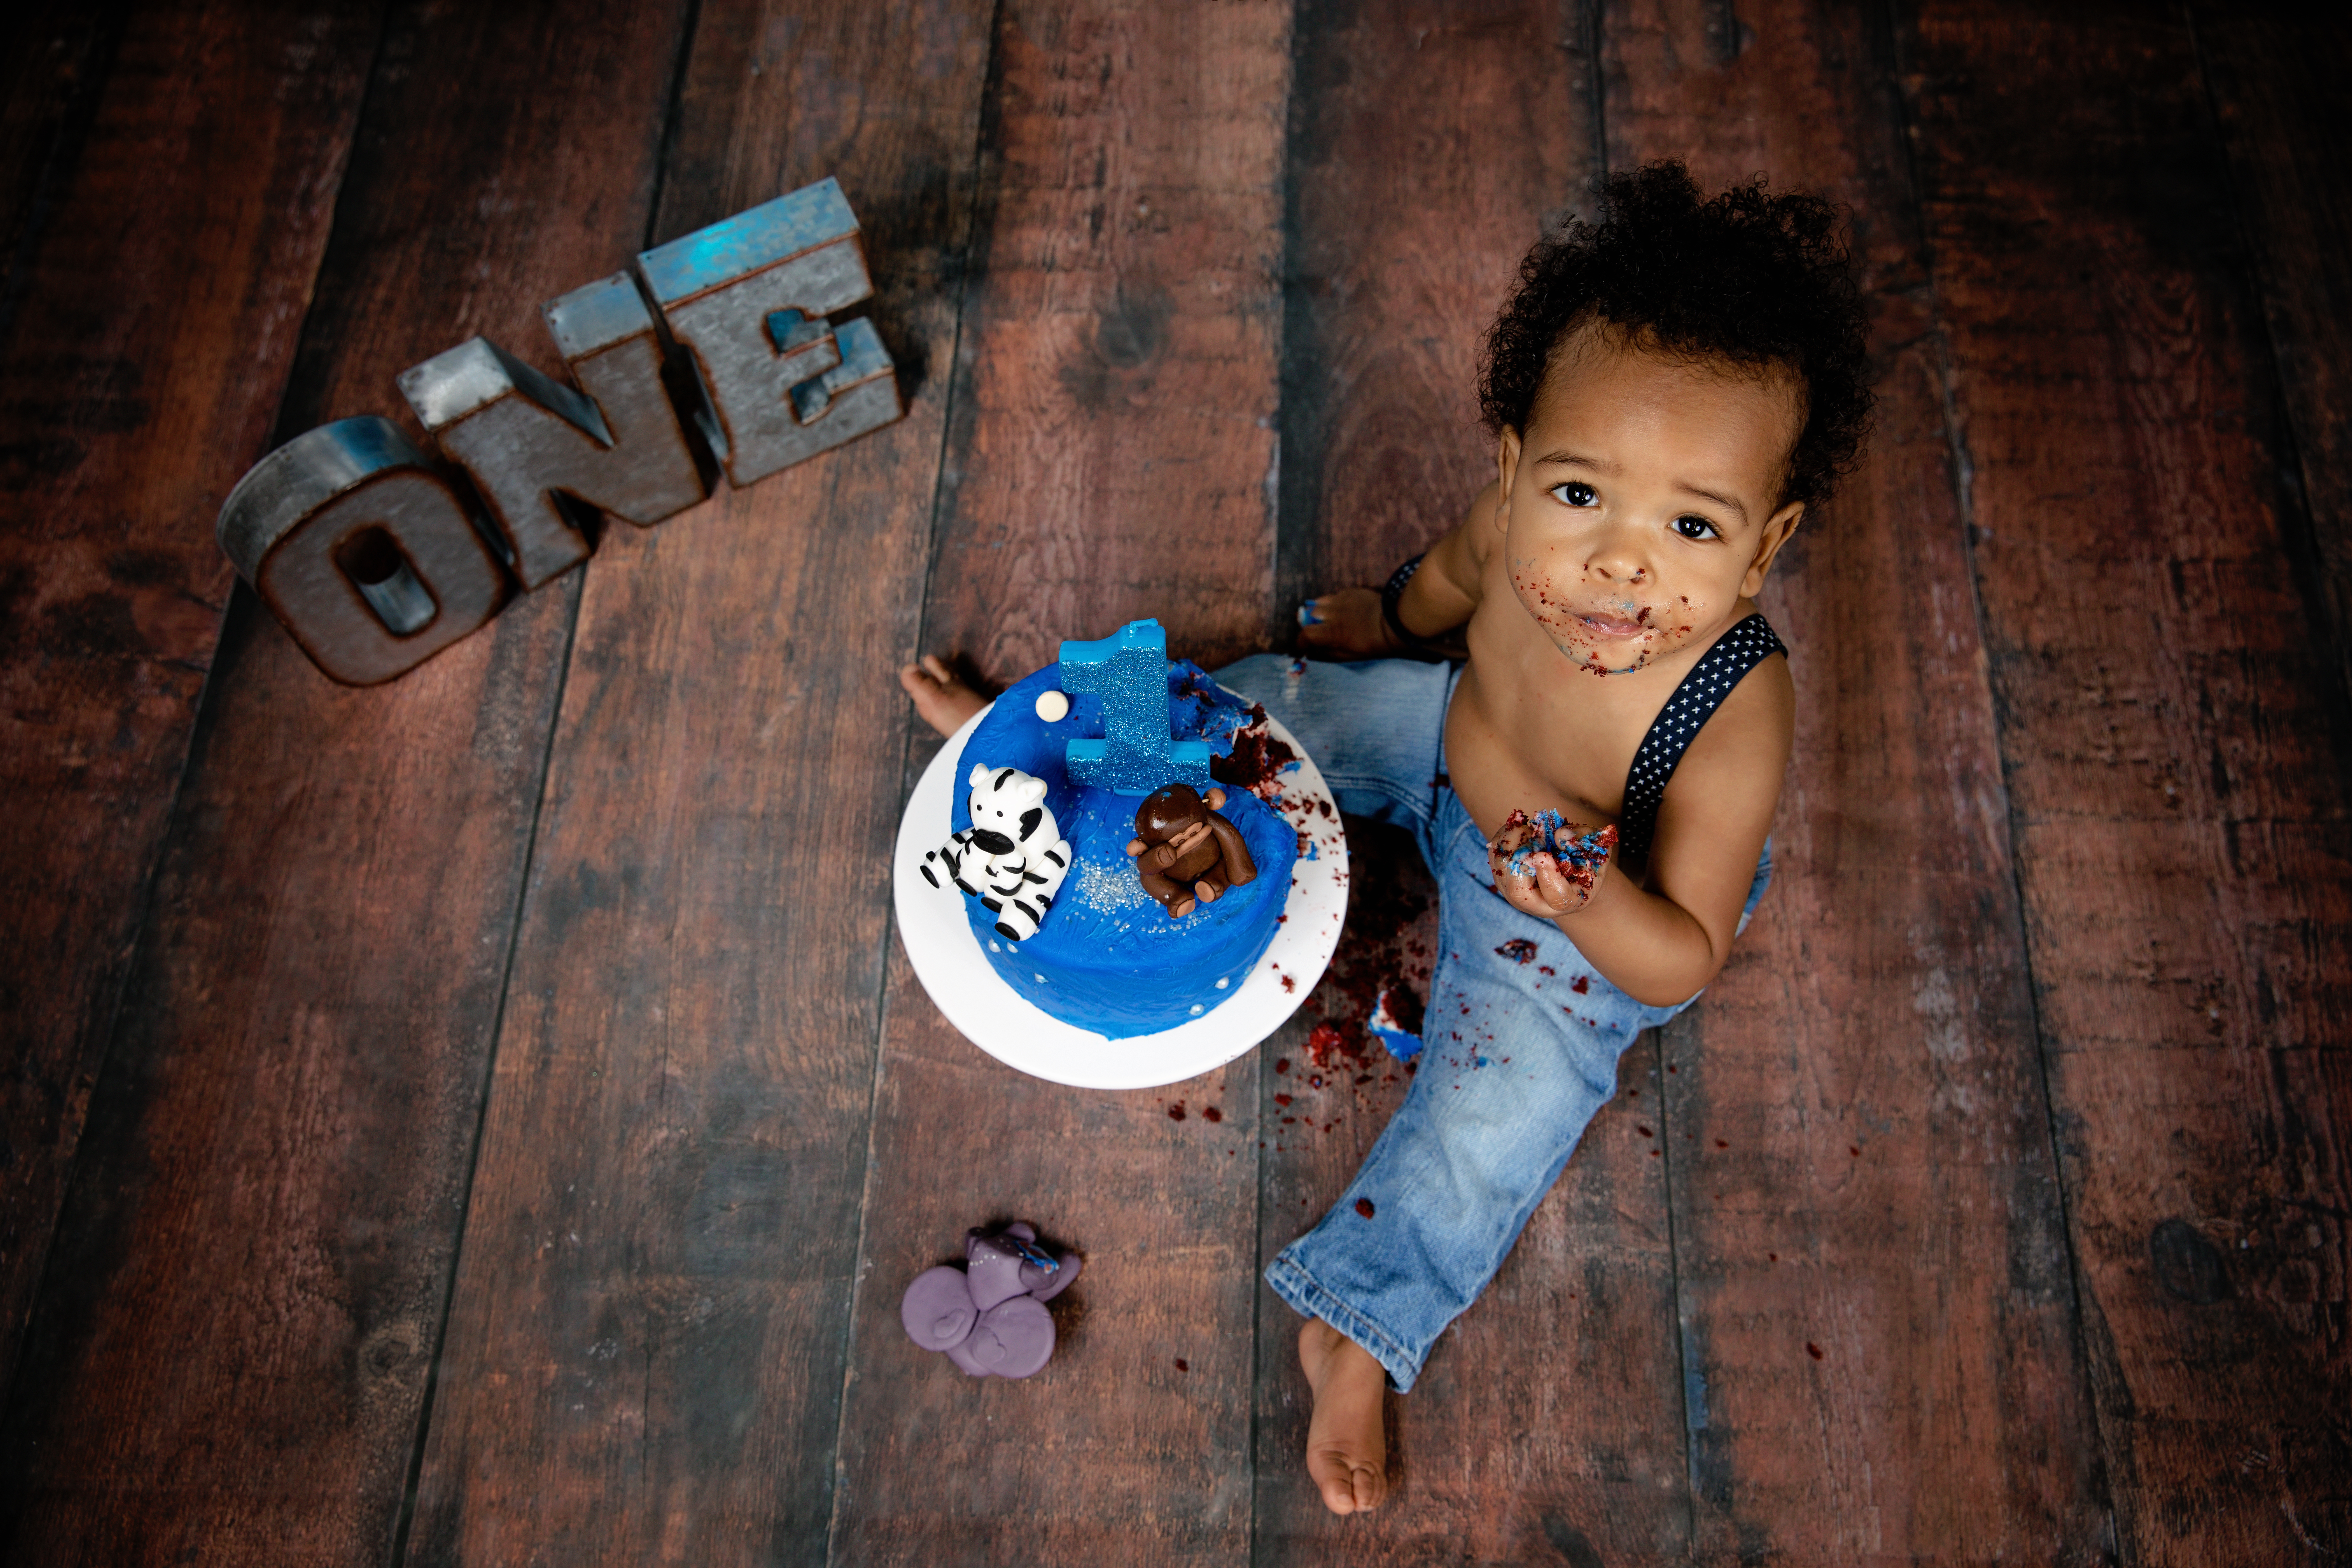 1st birthday blue cake smash in jeans on old wood floor